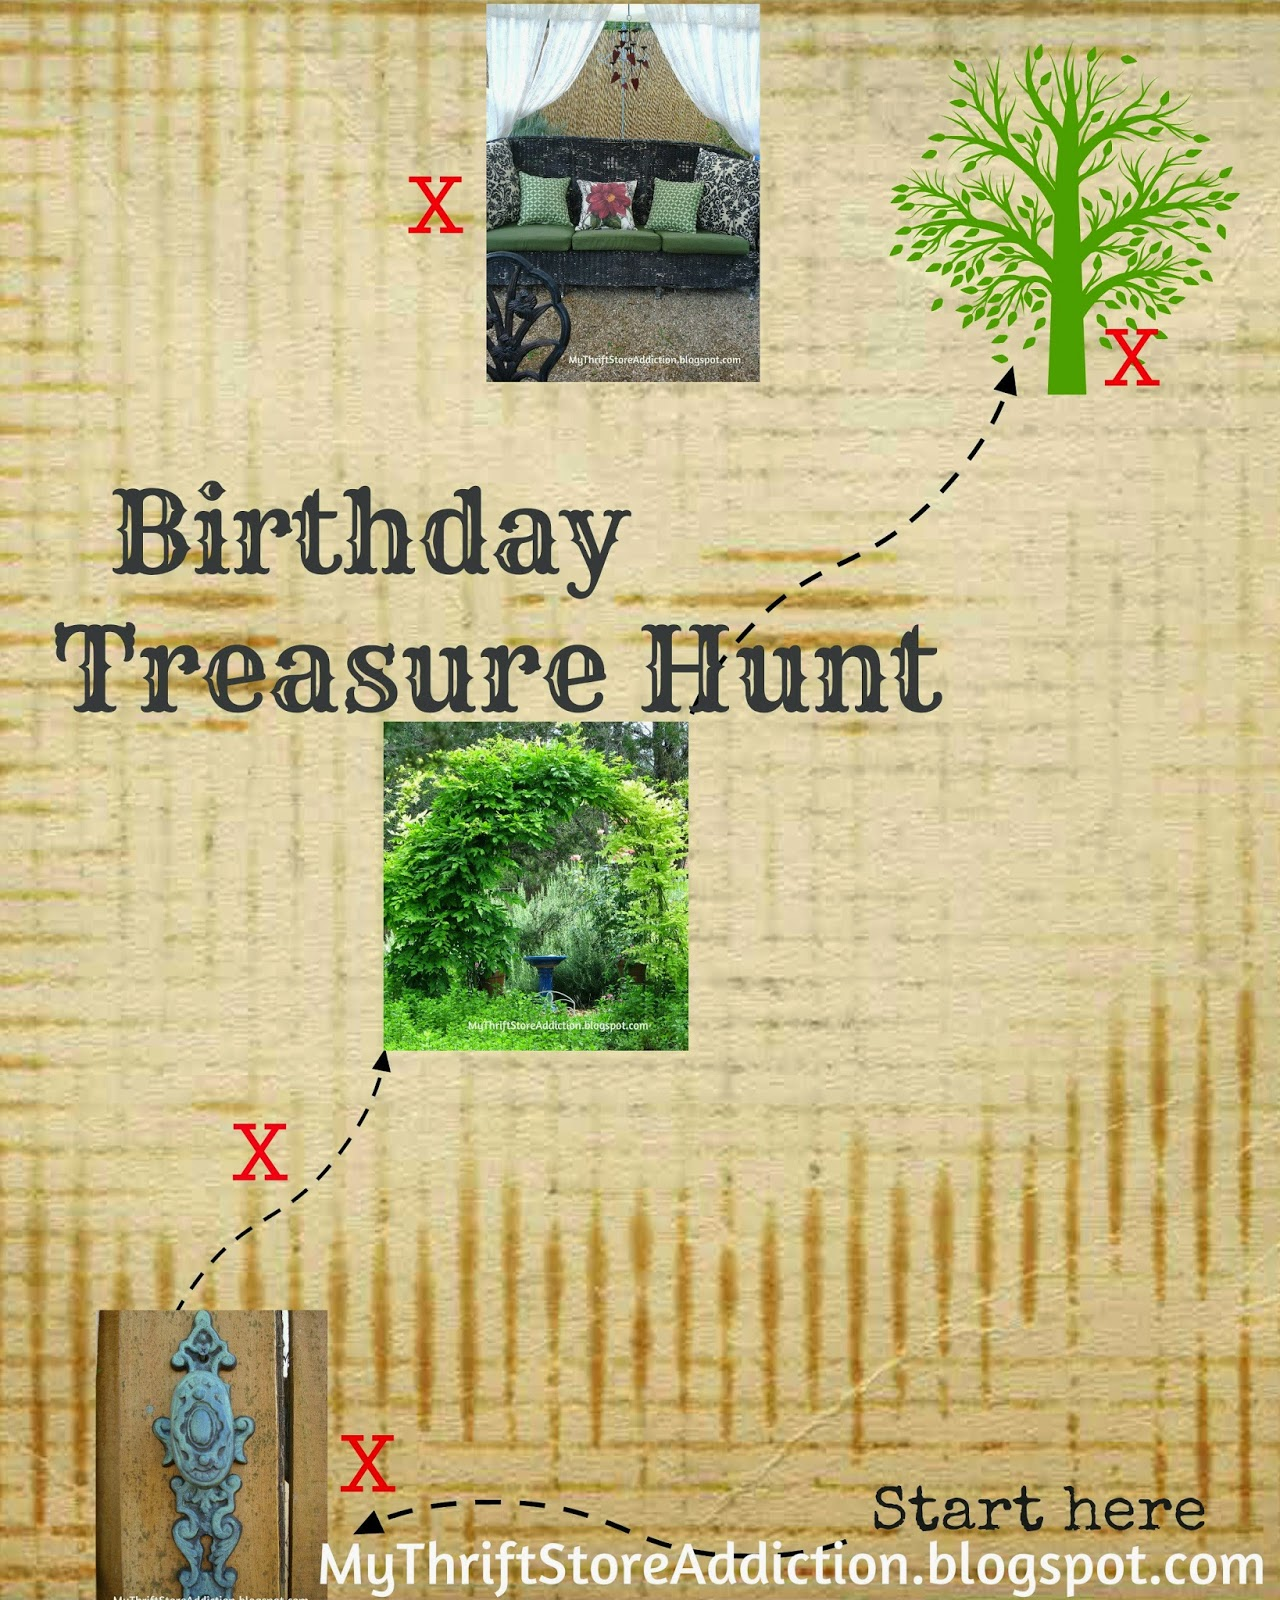 Birthday treasure hunt and map